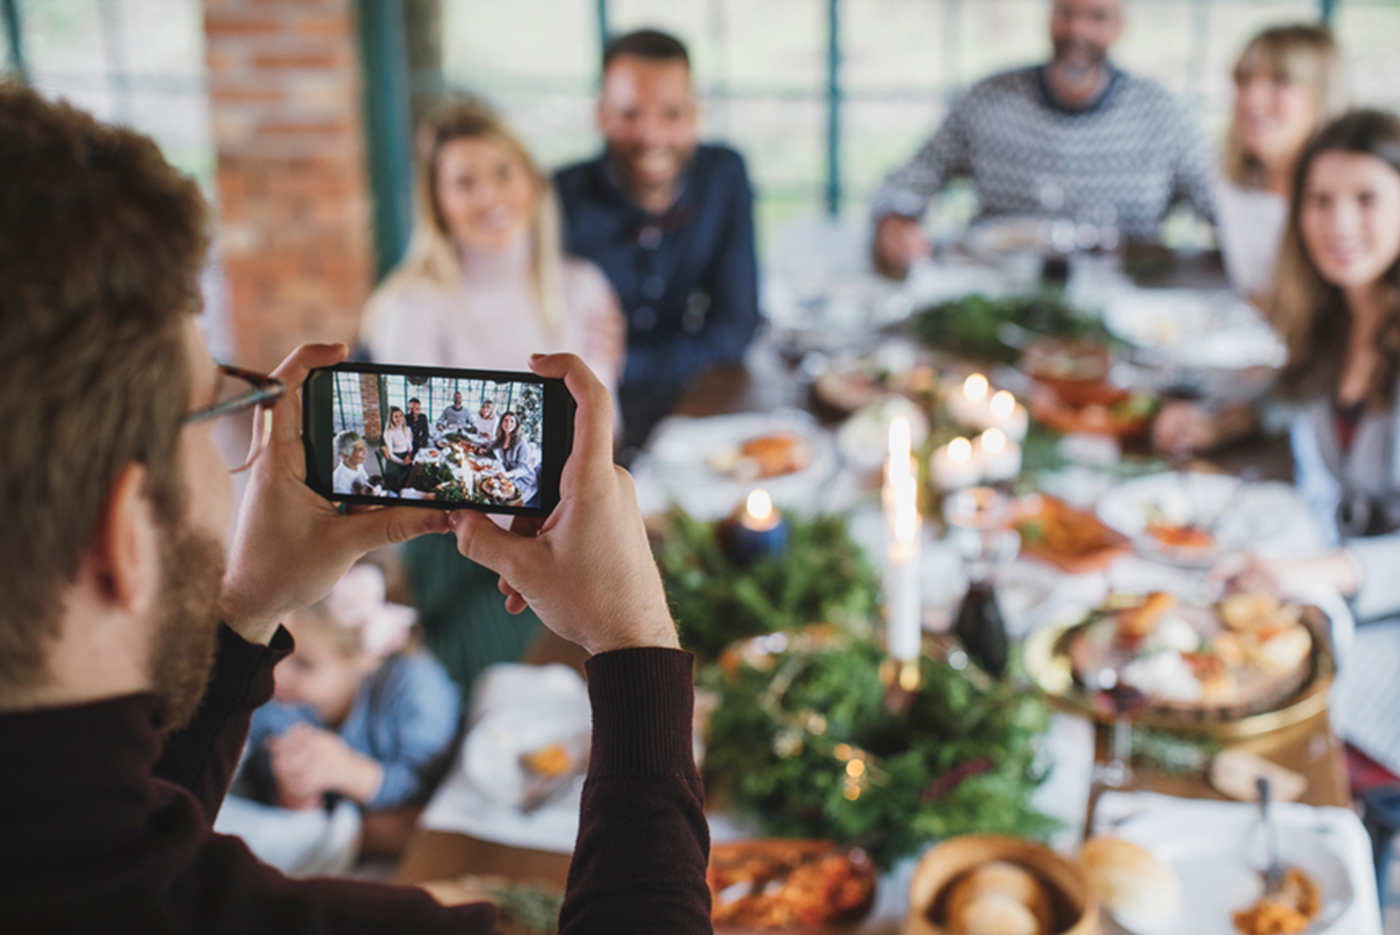 Complete the Job   Snap picture or record video  All you have to do is snap pictures, record videos or stream live for your client's birthday party, products, dinners, weddings, pets, family etc.